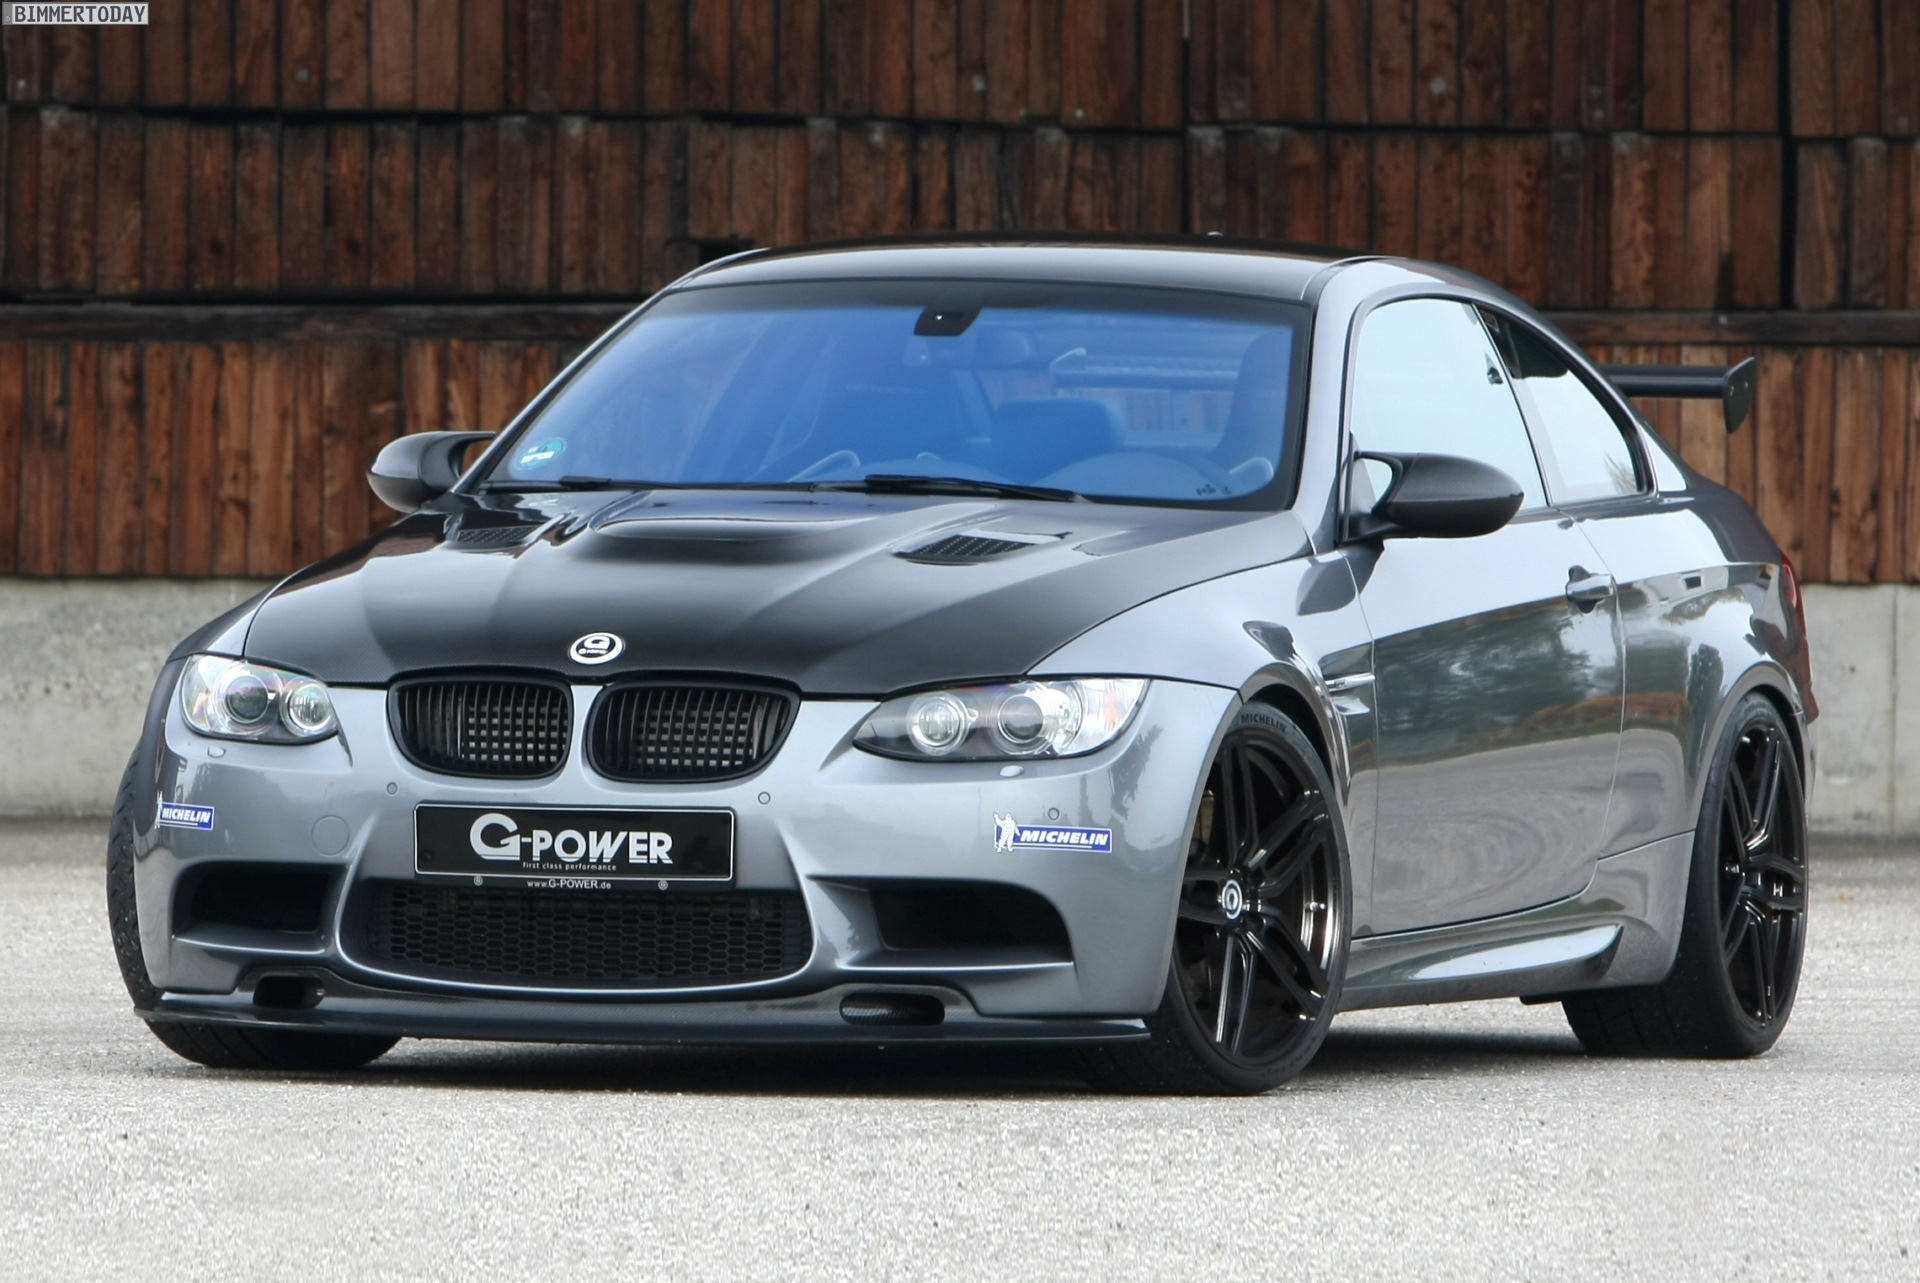 G Power Bmw M3 E92 Tuning Carbon Anbauten Und 740 Ps